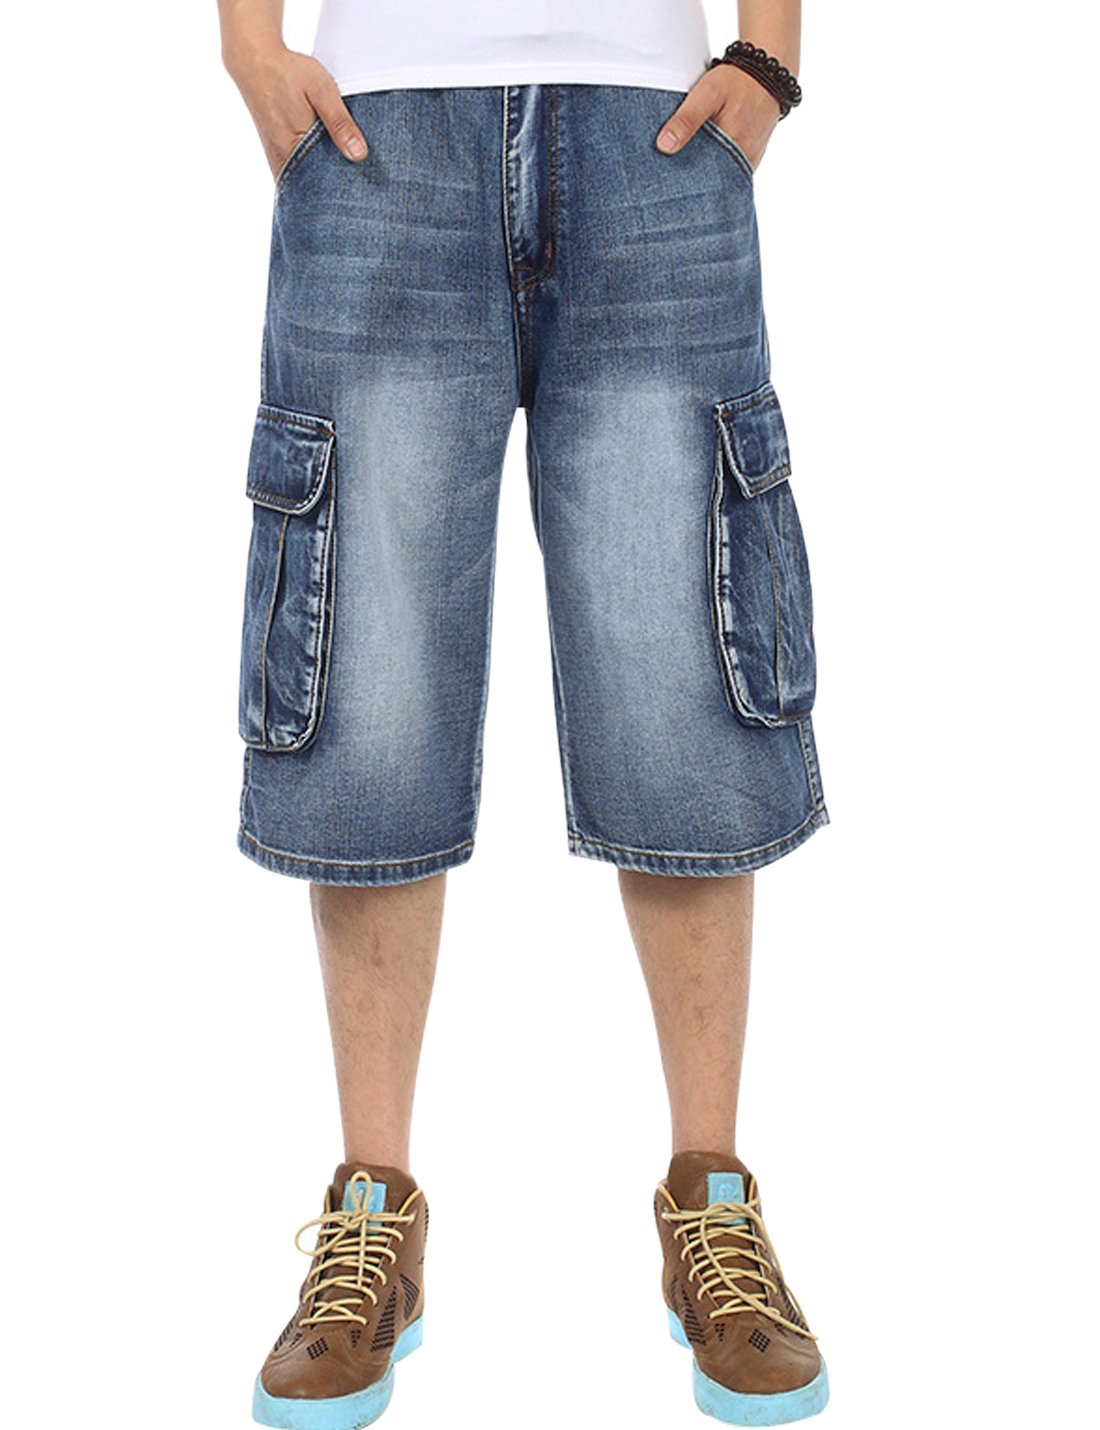 Yeokou Men's Loose Hip Hop Cropped Jeans Work Denim Shorts with Cargo Pockets (38, Blue-Two Pockets)